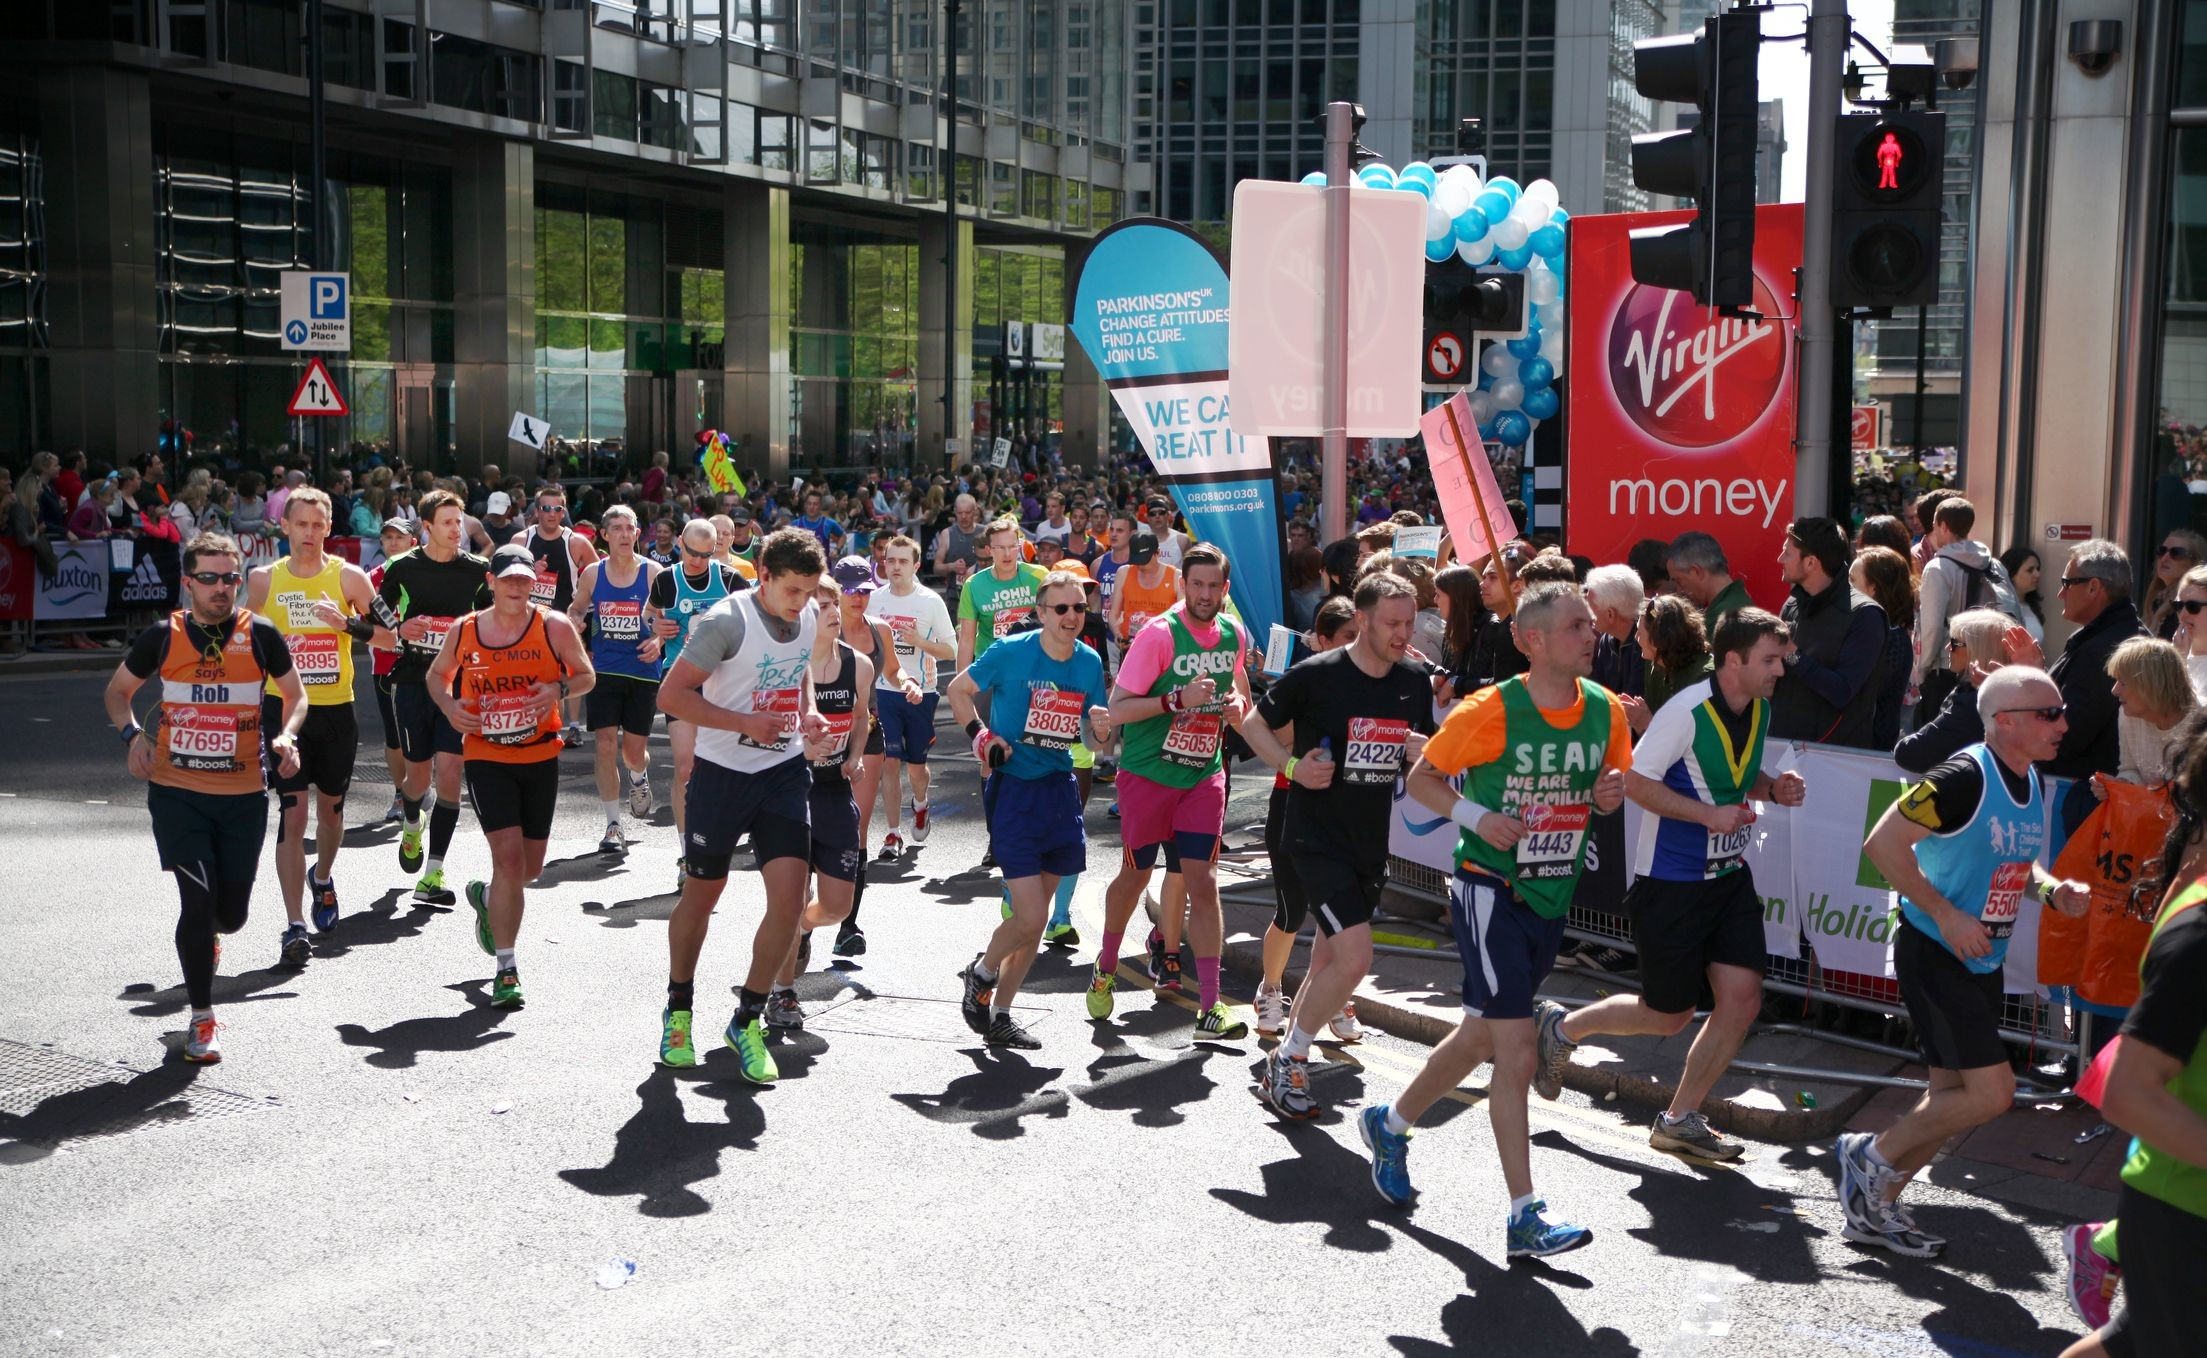 The total amount raised through the London Marathon will top 1 billion pounds this year ($1,319,000US)